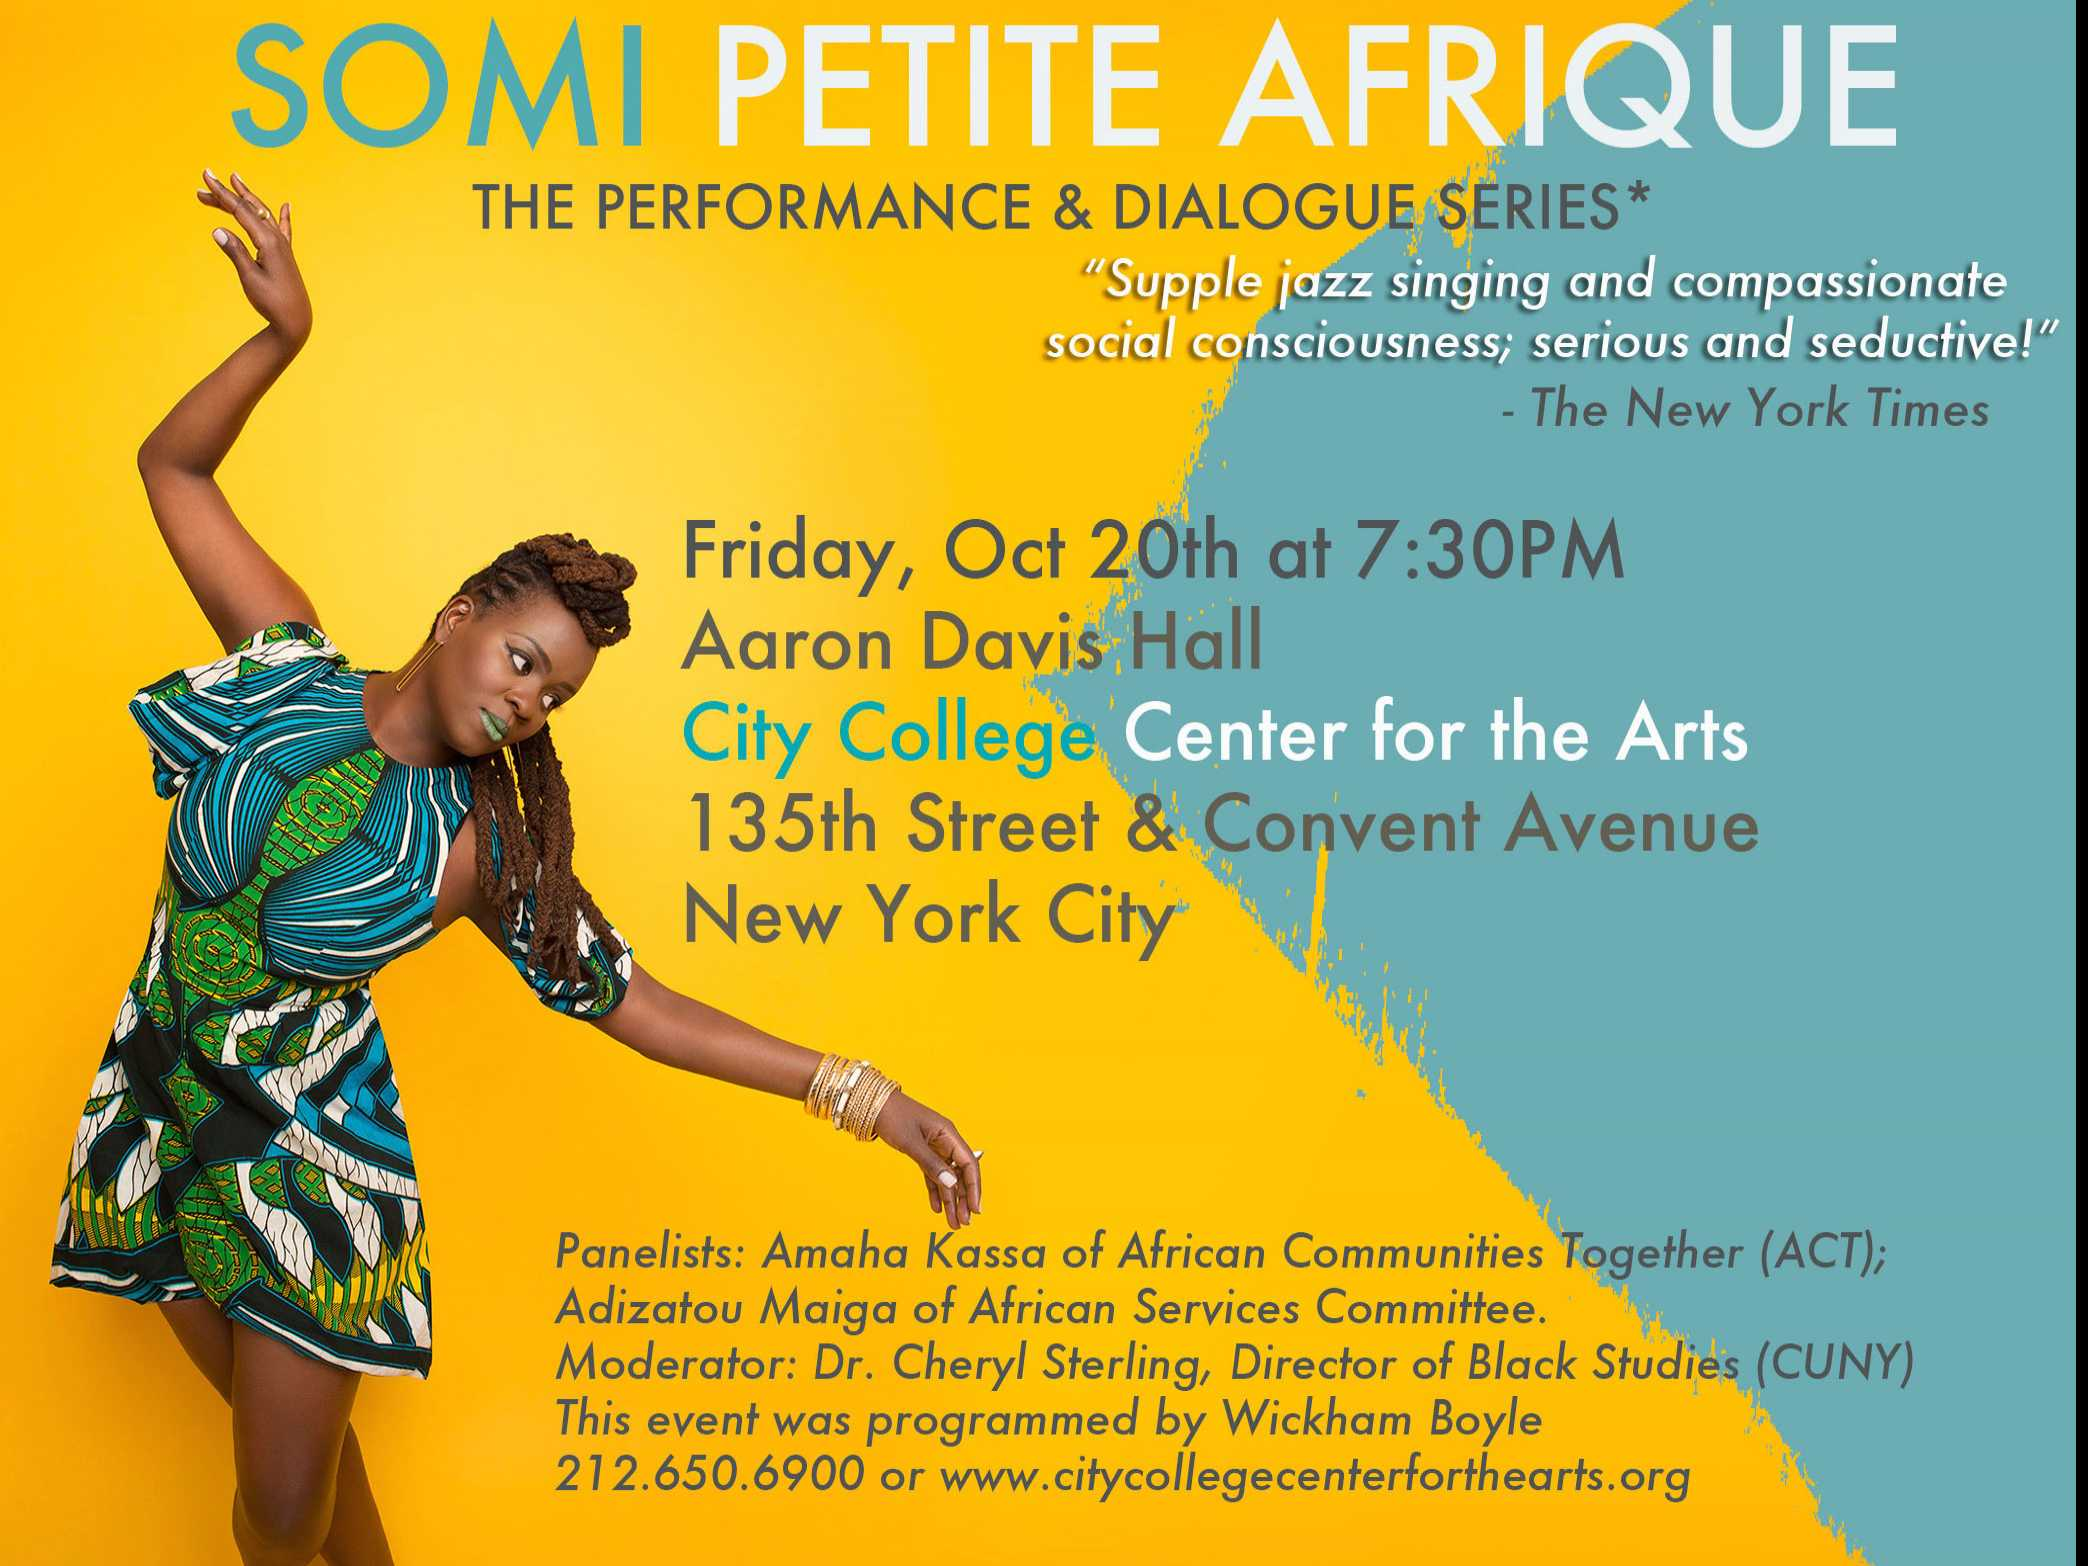 Somi Petite Afrique Brings Supple Jazz Stylings to Harlem